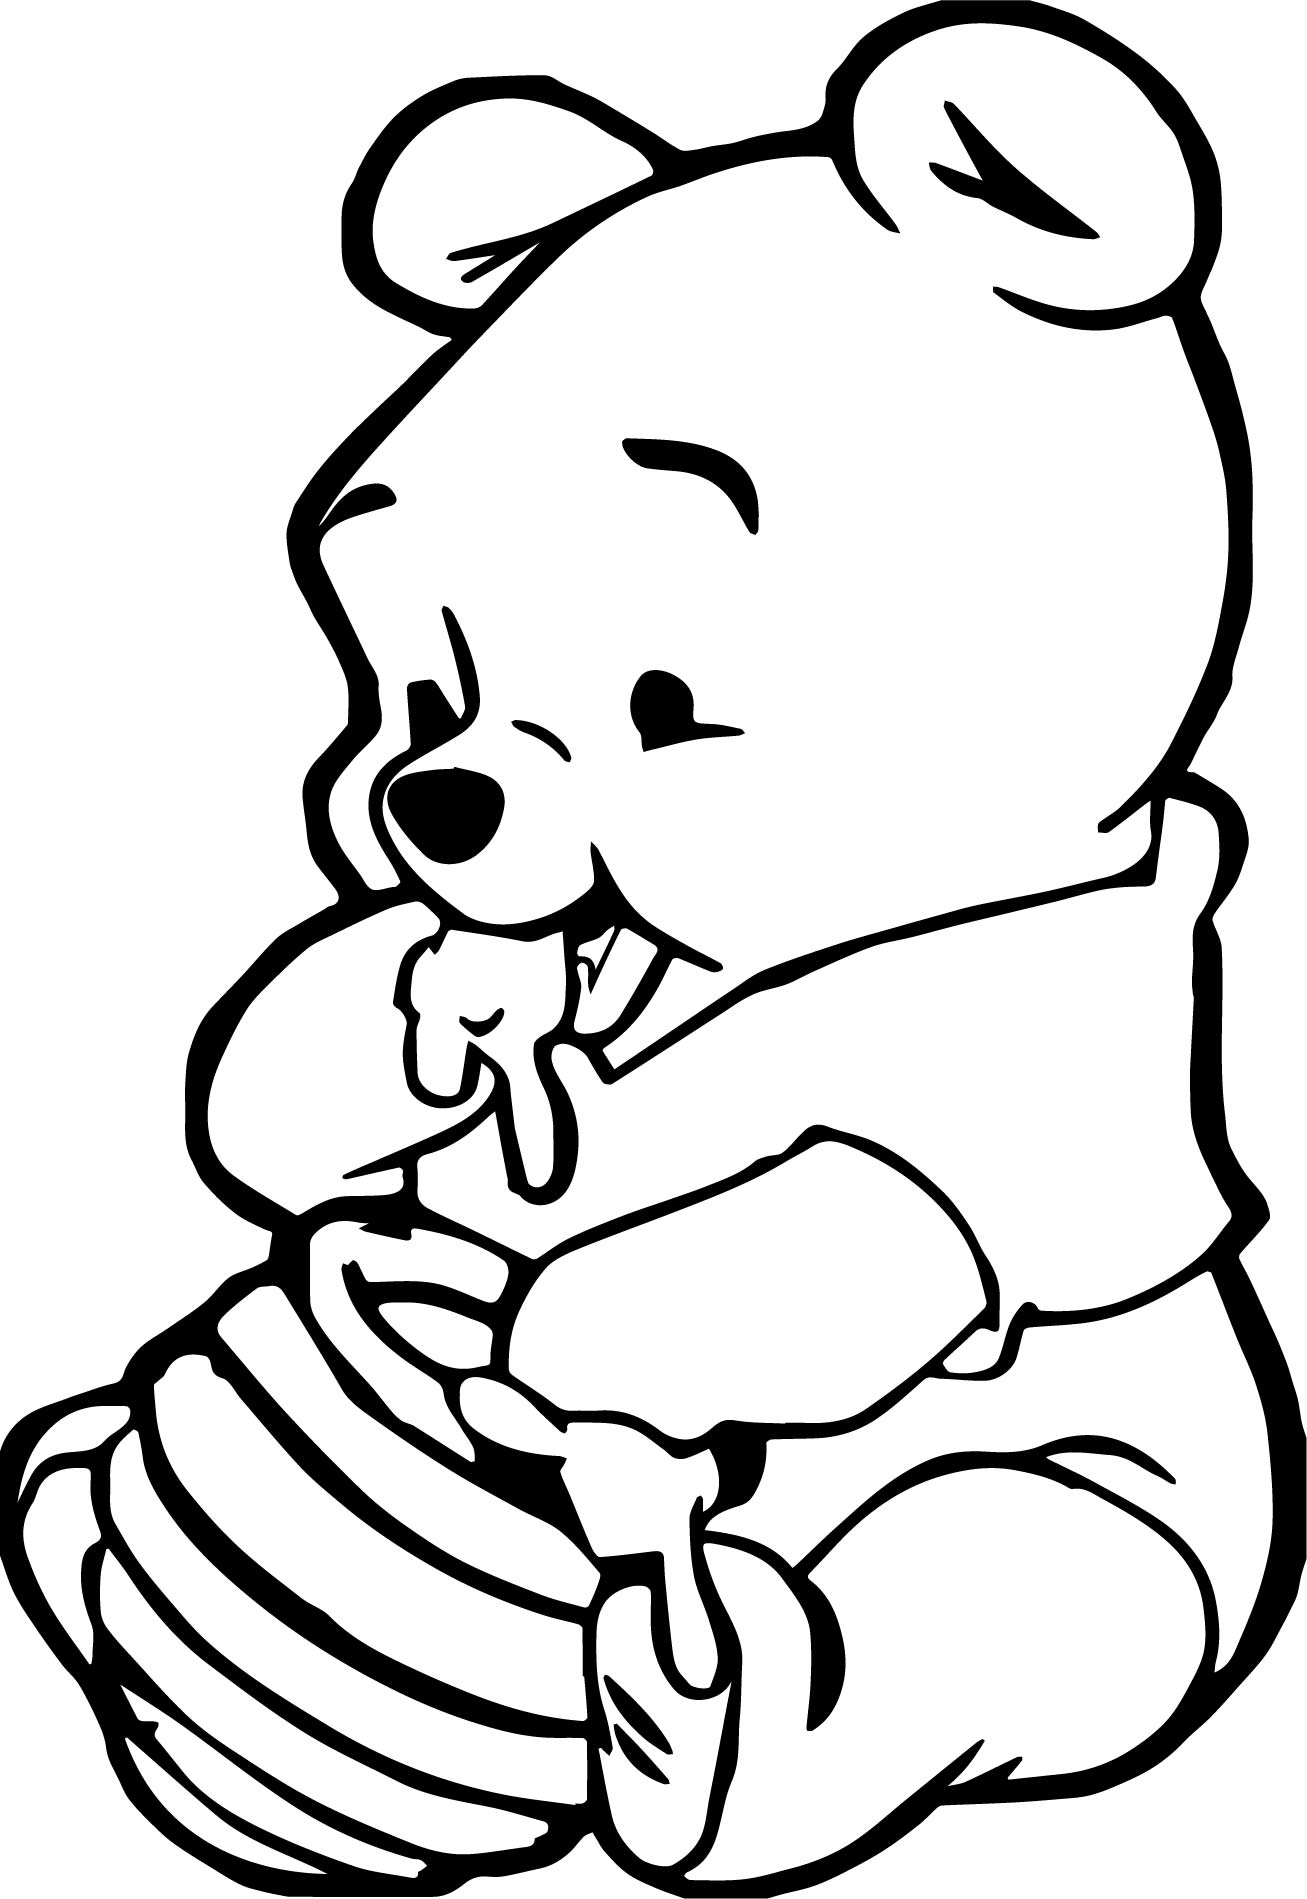 winnie the pooh and tigger coloring pages - cute baby winnie the pooh eating hunny coloring page